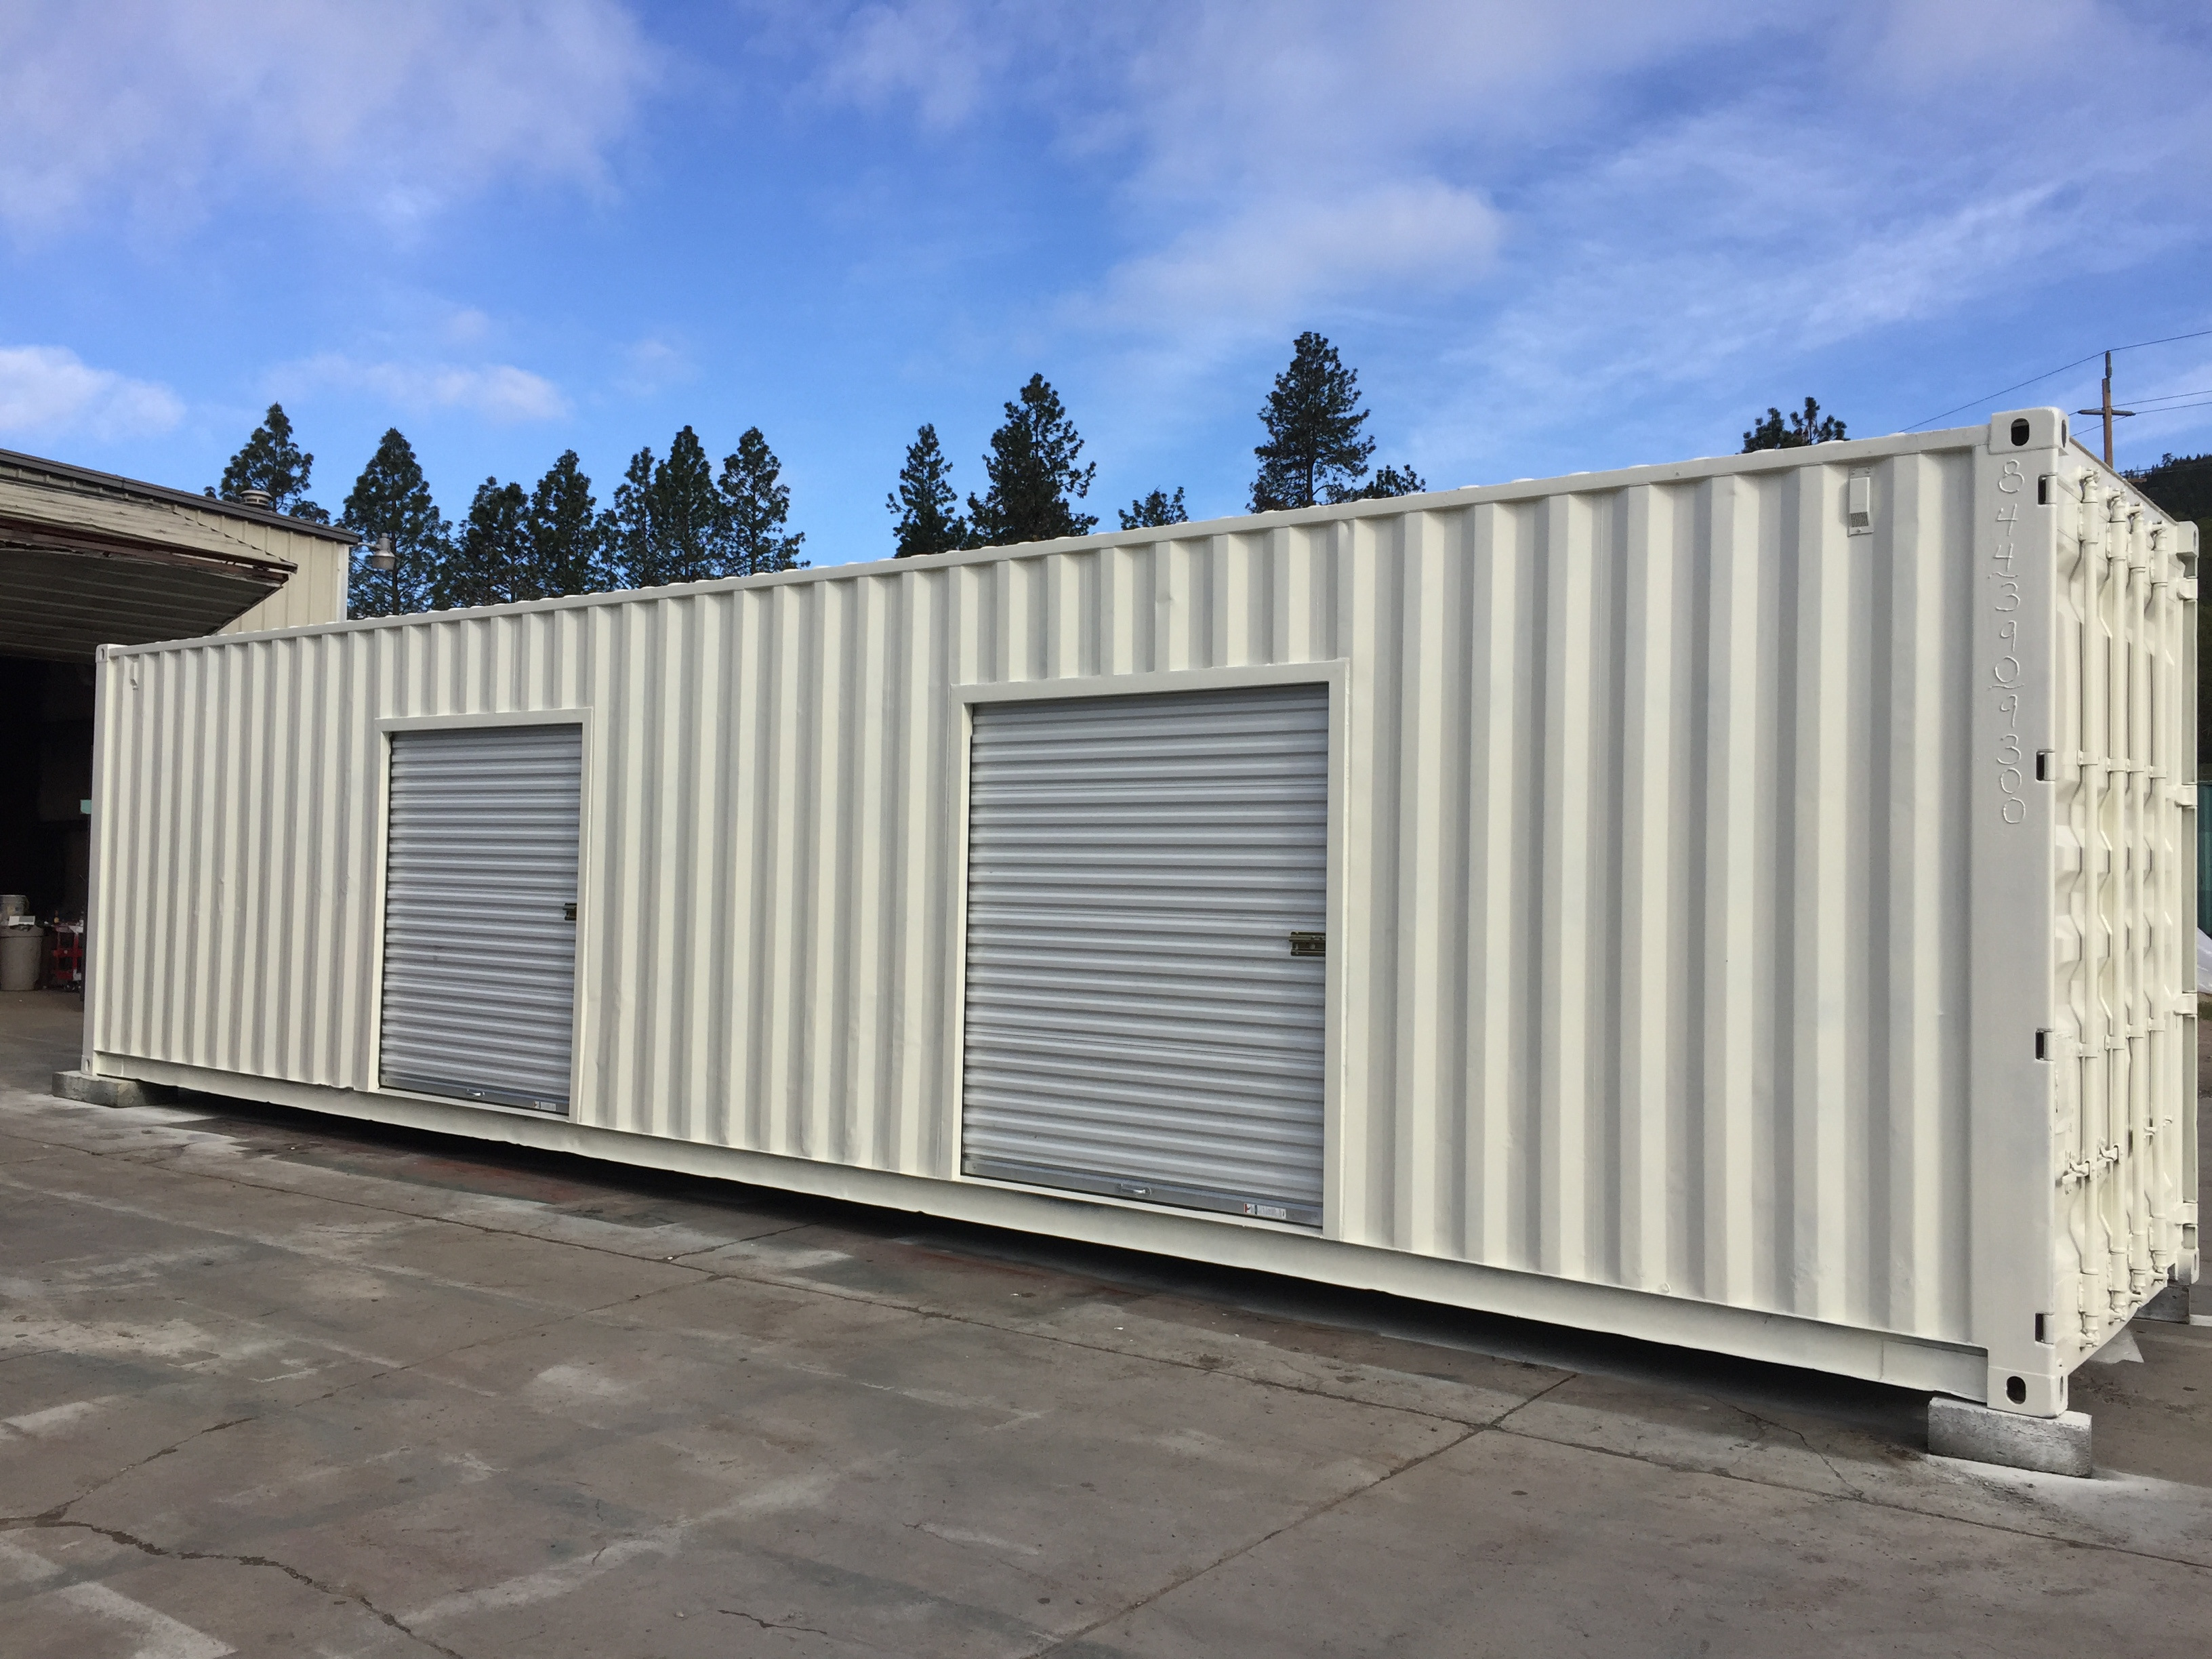 Oregon Cargo Containers Inc. (844) 390-9300